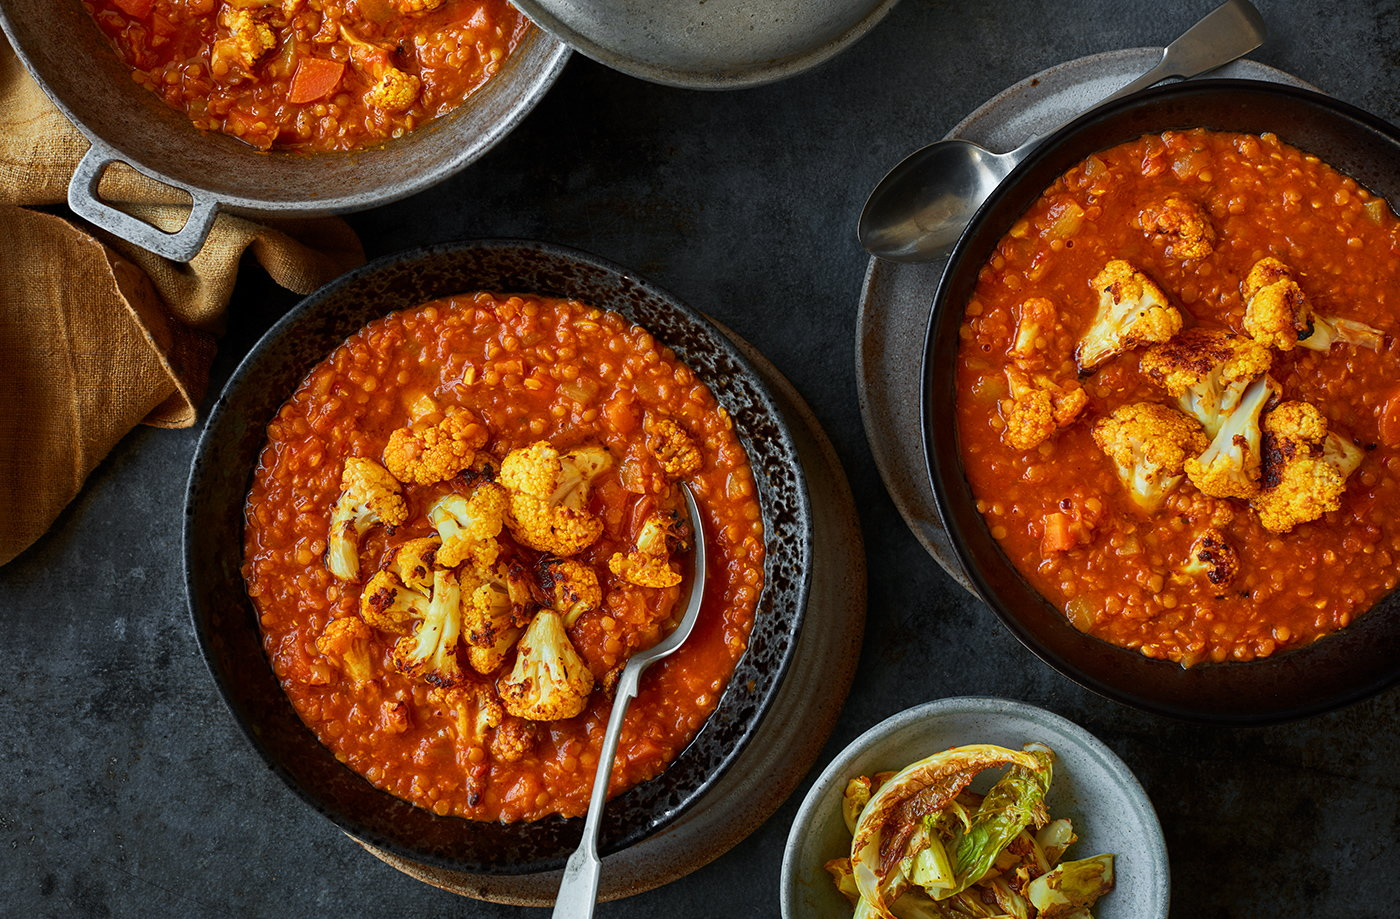 Red lentil and cauliflower dhal recipe